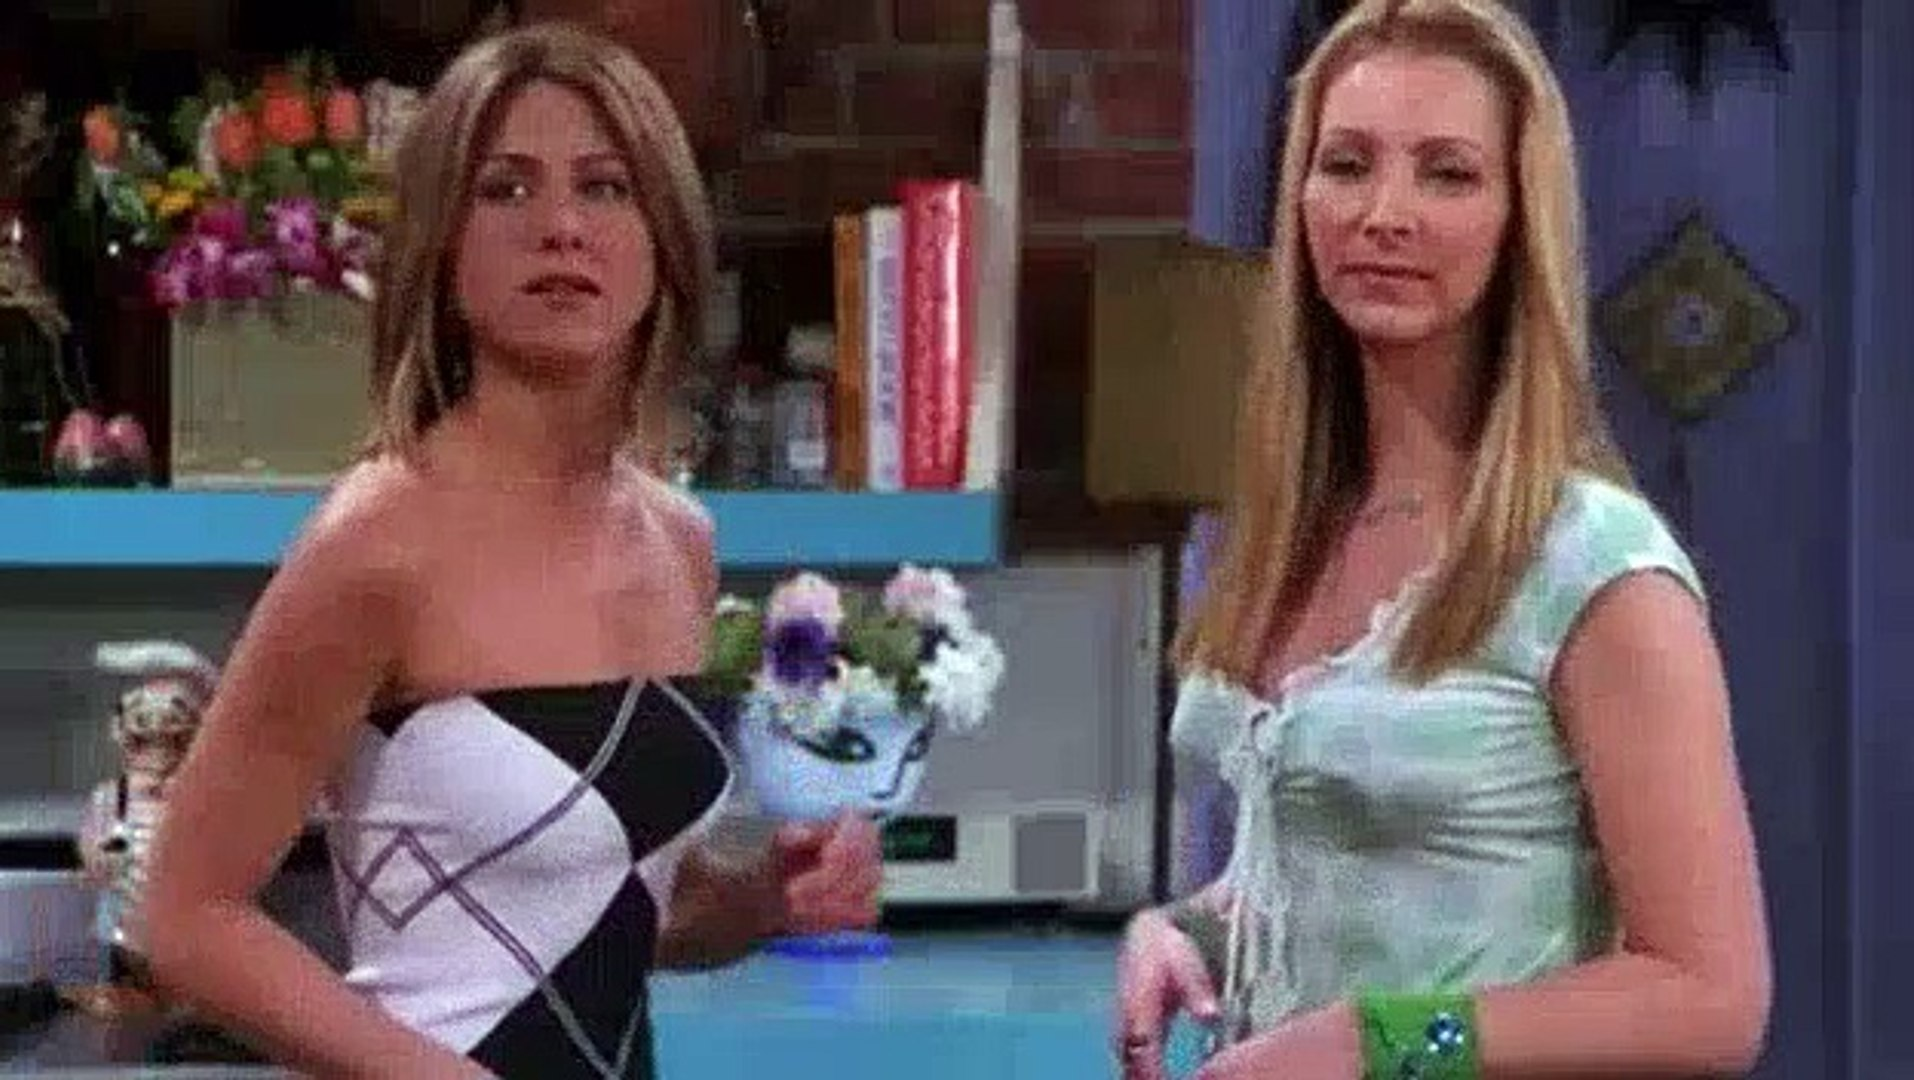 Friends S07E19 The One with Ross and Monica's Cousin